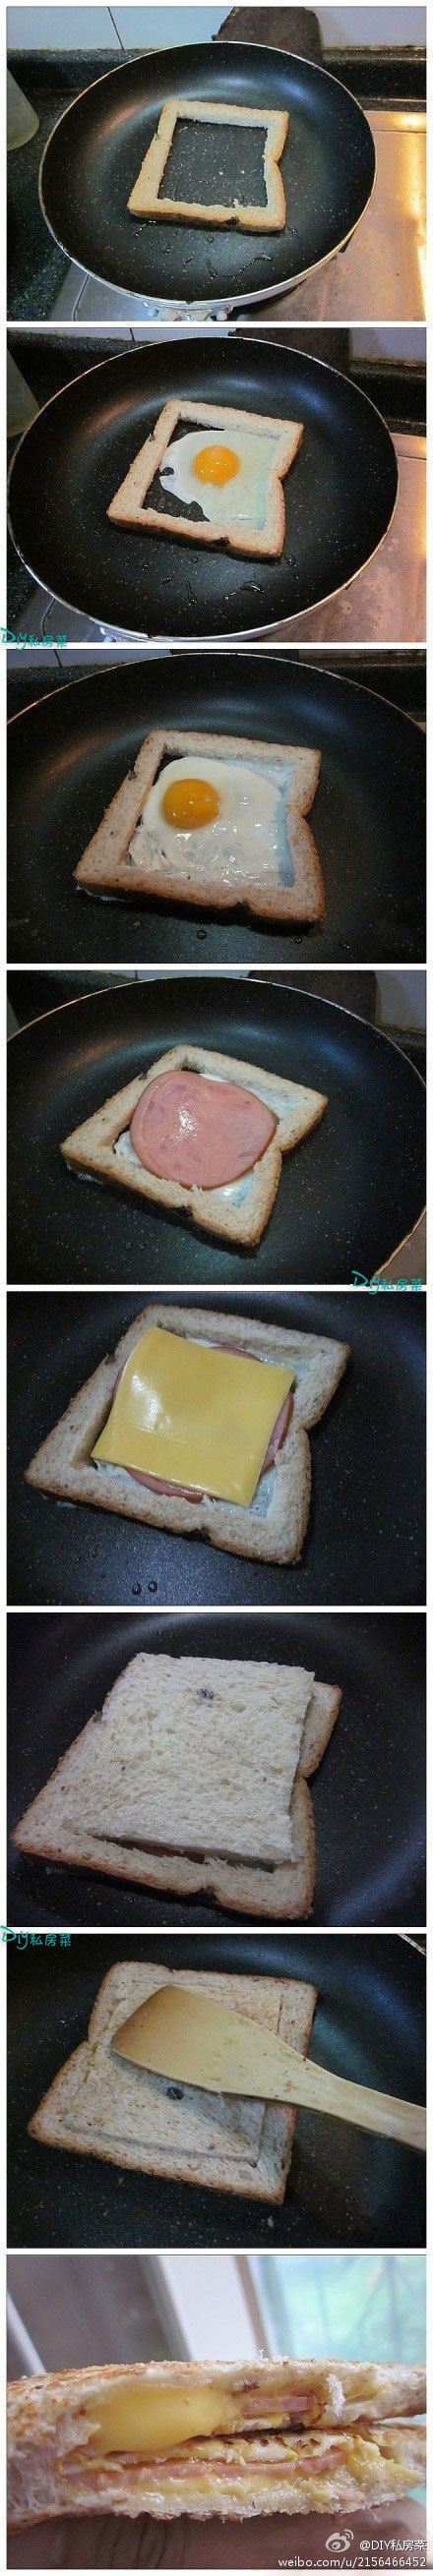 Awesome breakfast idea!